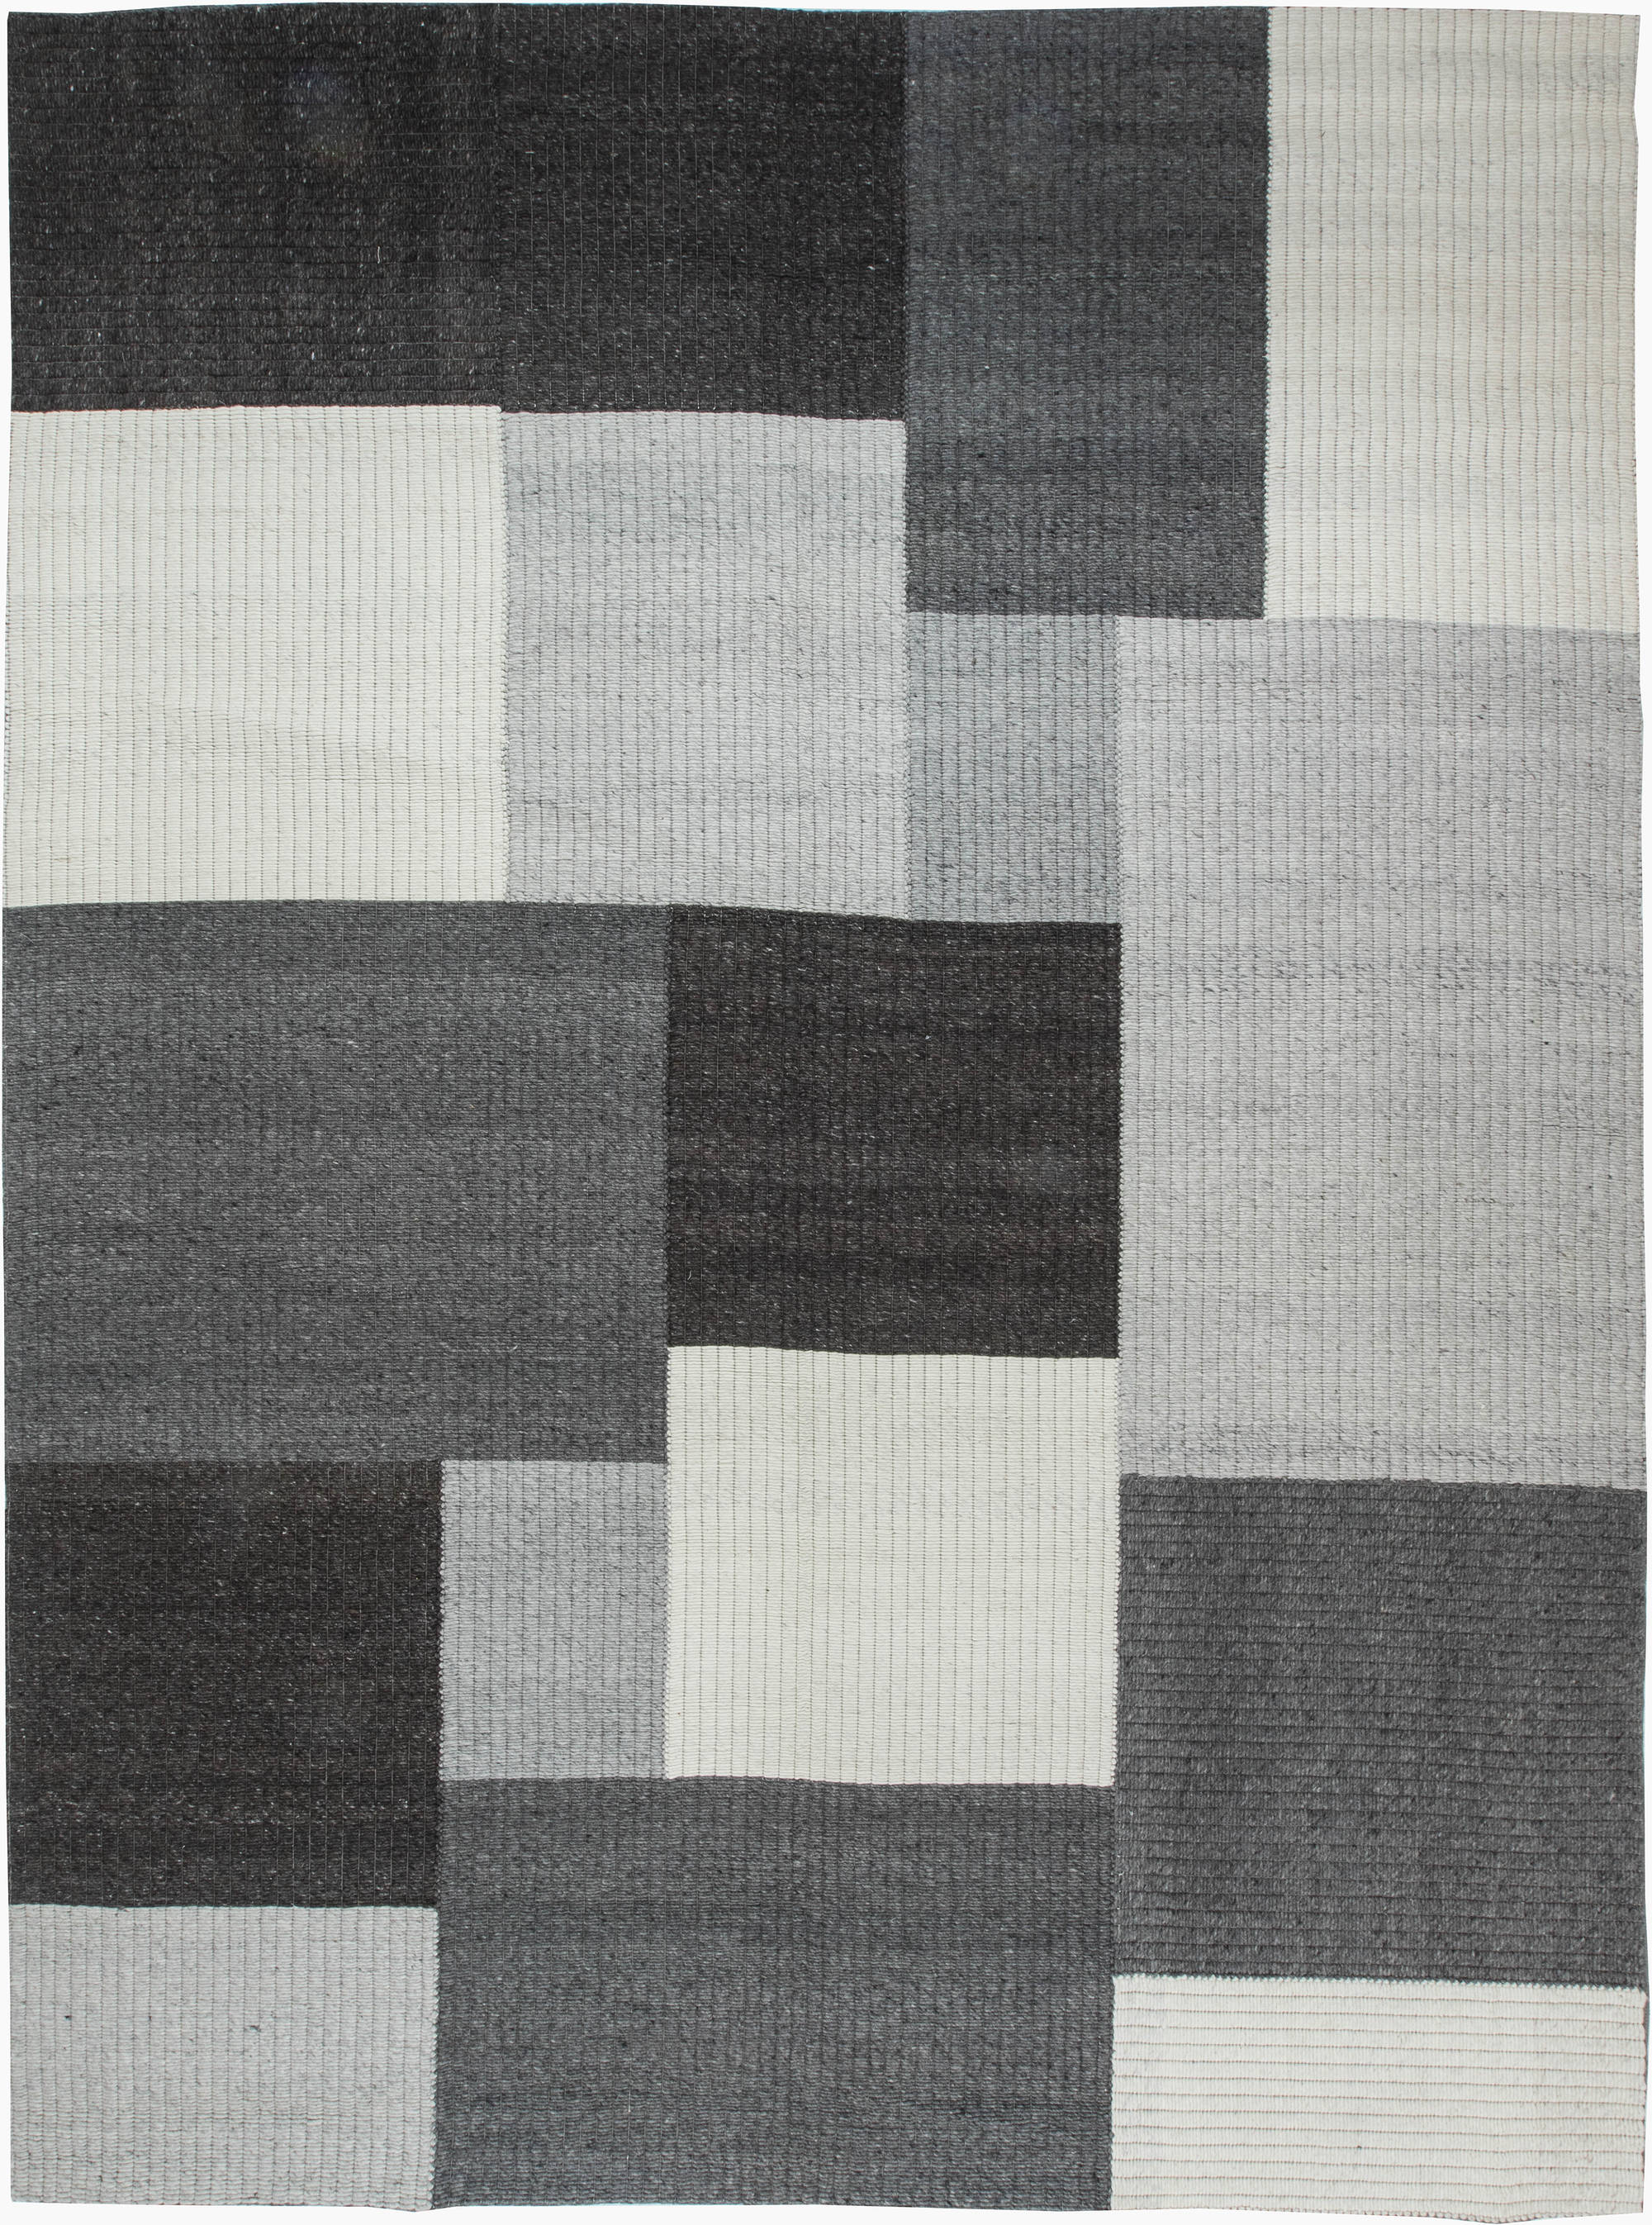 Modern Contemporary Rugs Carpets and Designs from New York